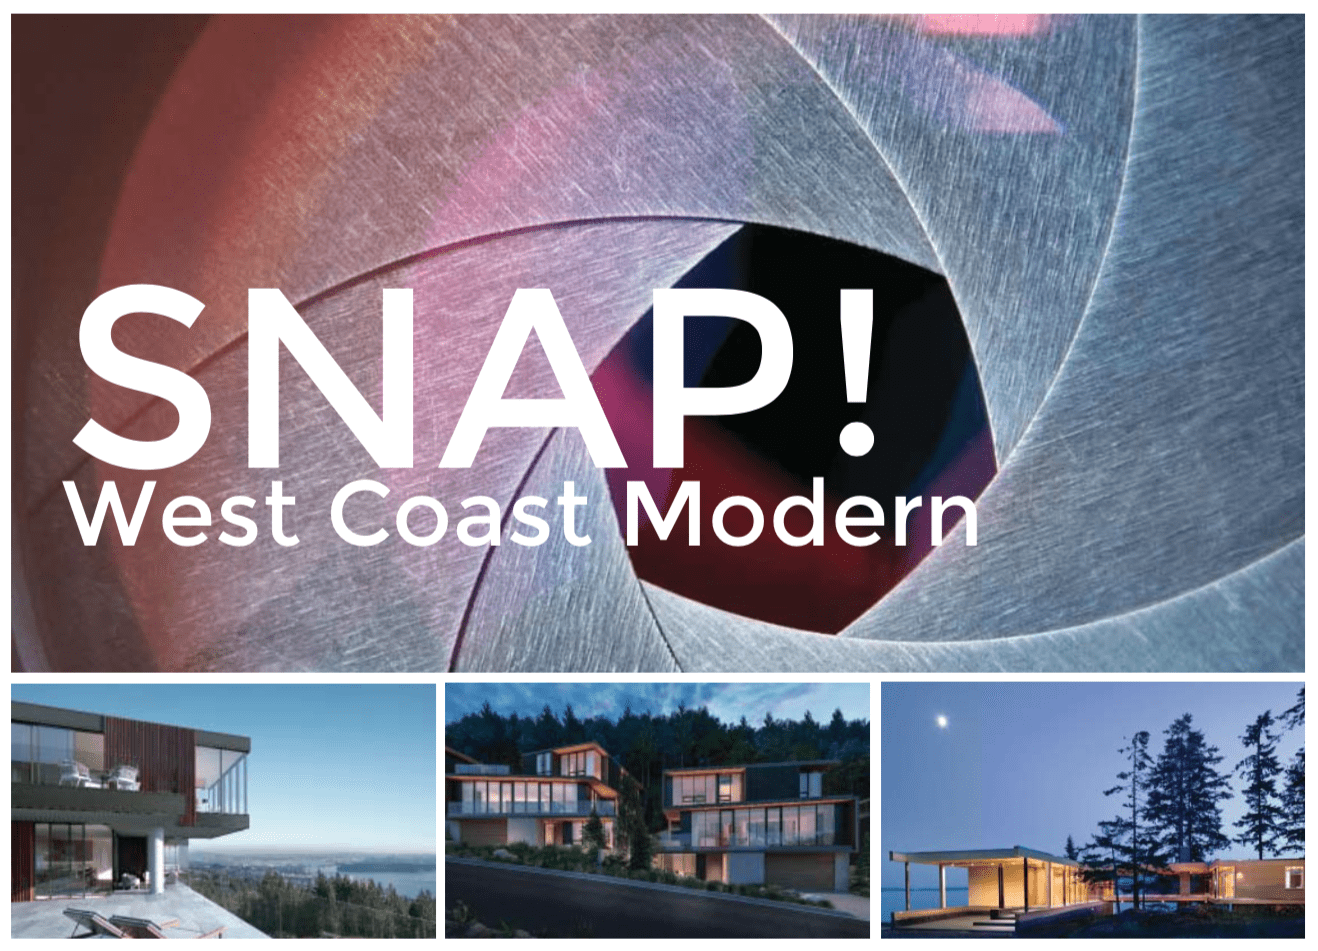 Snap! West Coast Modern